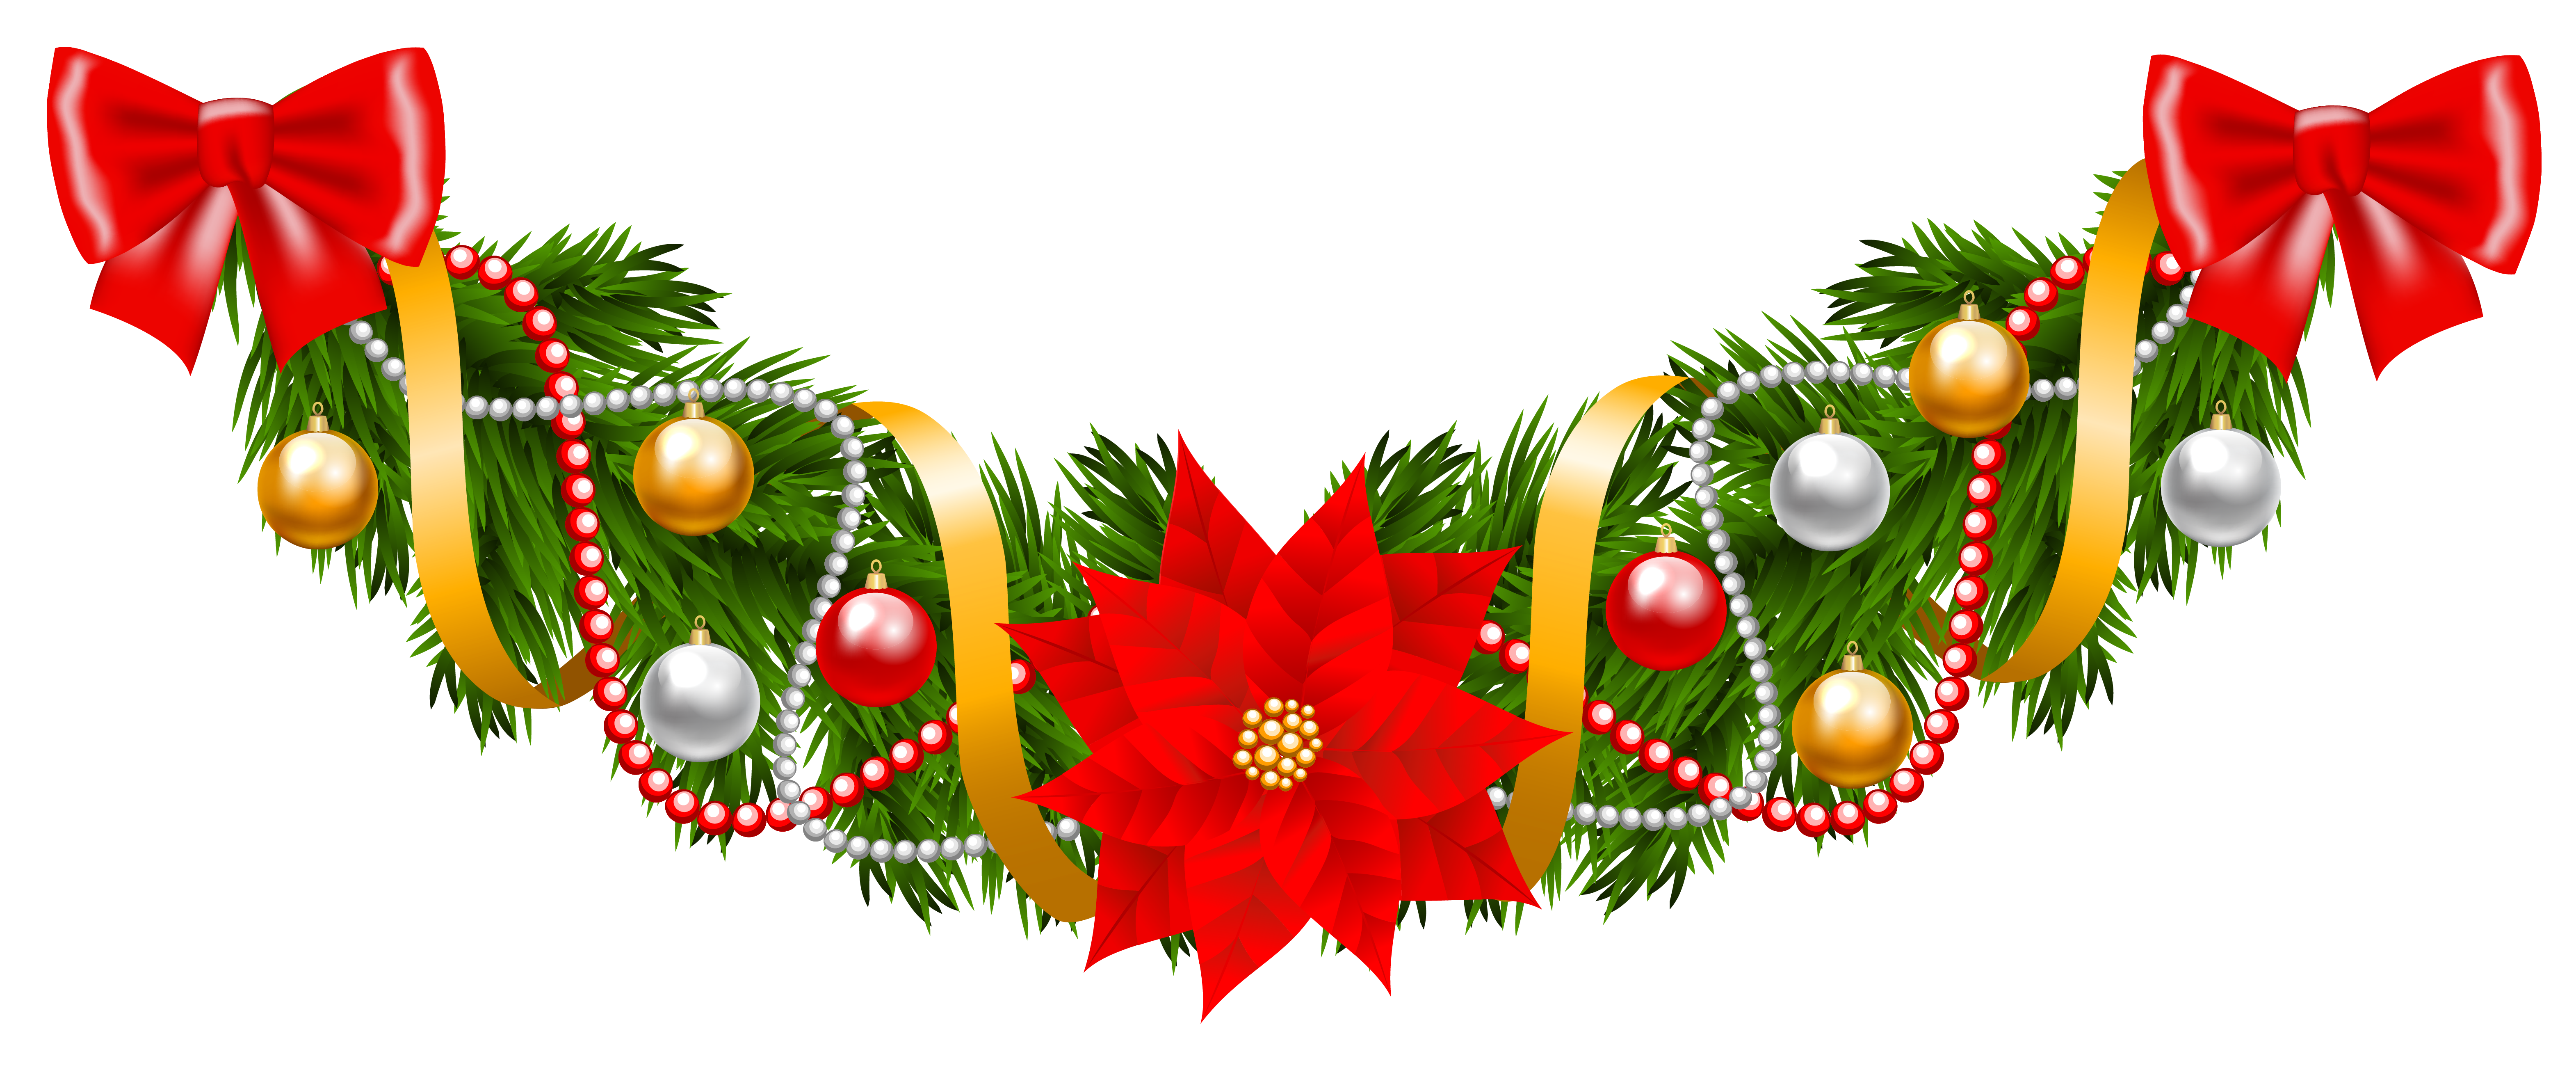 Poinsettia border png. Collection of free